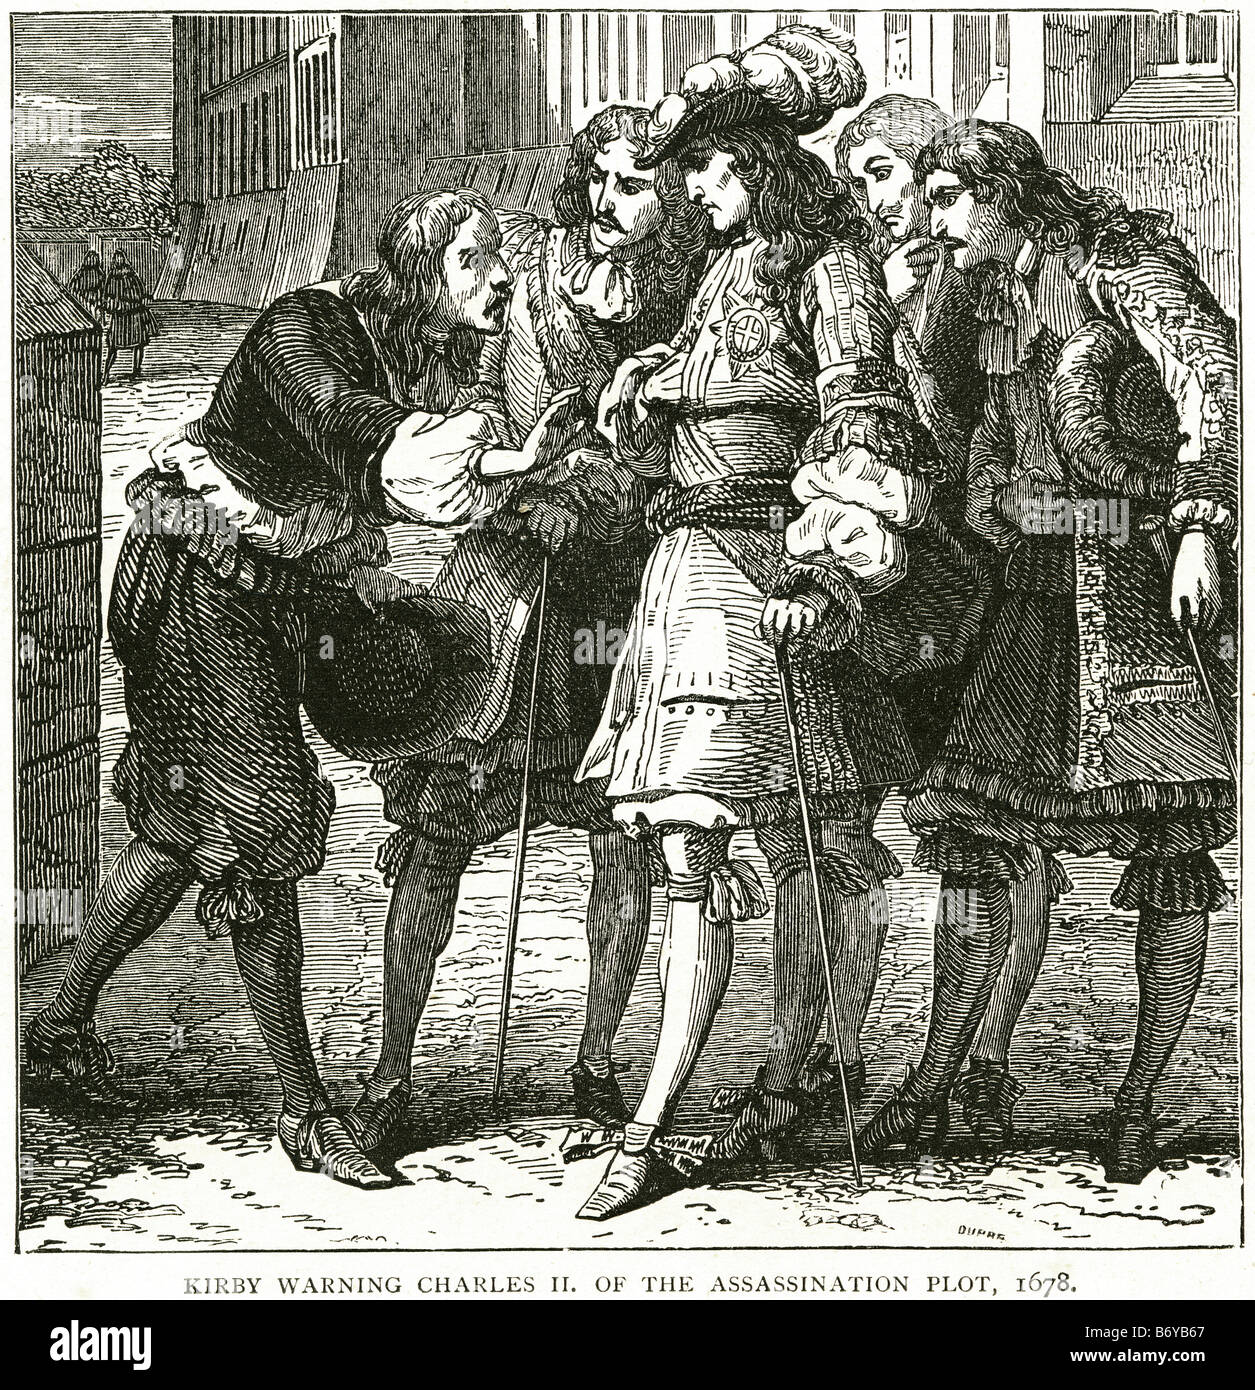 kirby warning charles II of the assassination plot 1678 The Popish Plot was  a fictitious conspiracy concocted by Titus Oates whi